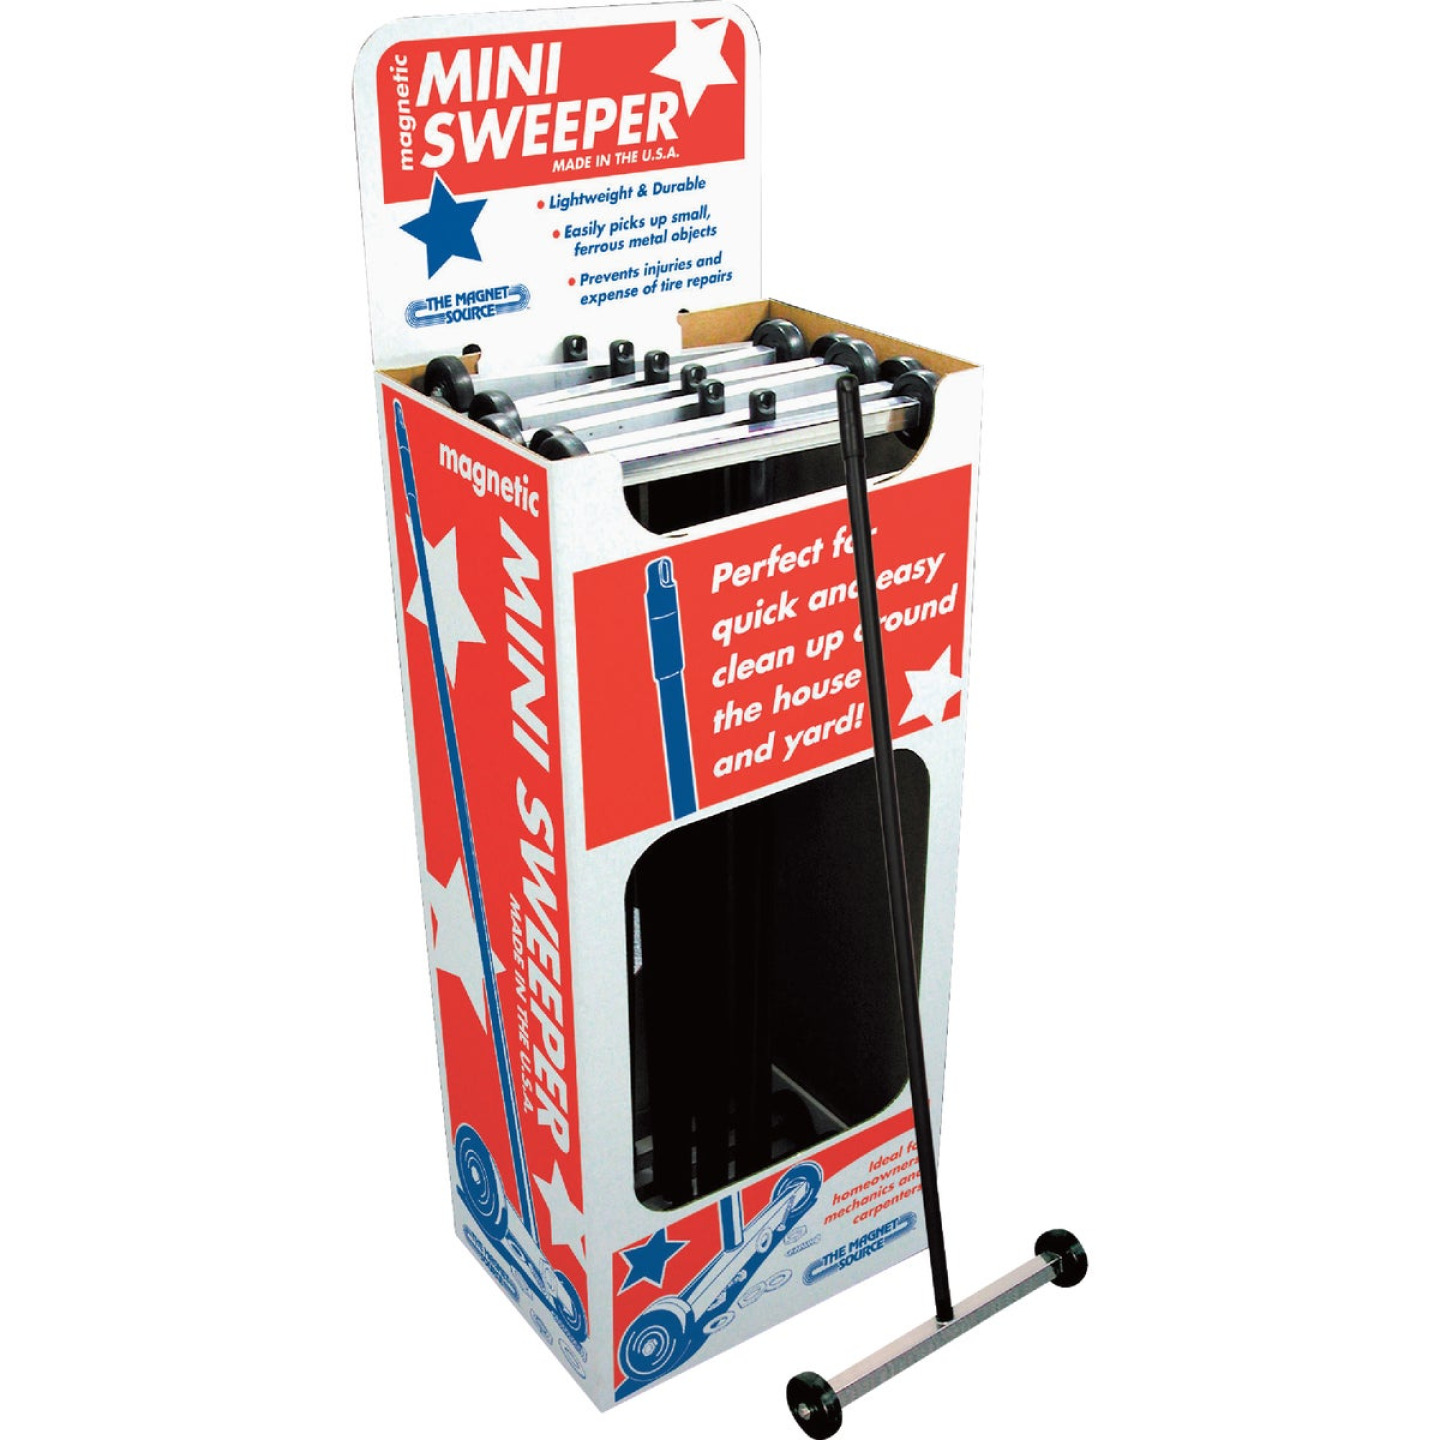 Master Magnetics Magnet Source 32 In. Mini Magnetic Floor Sweeper Image 4